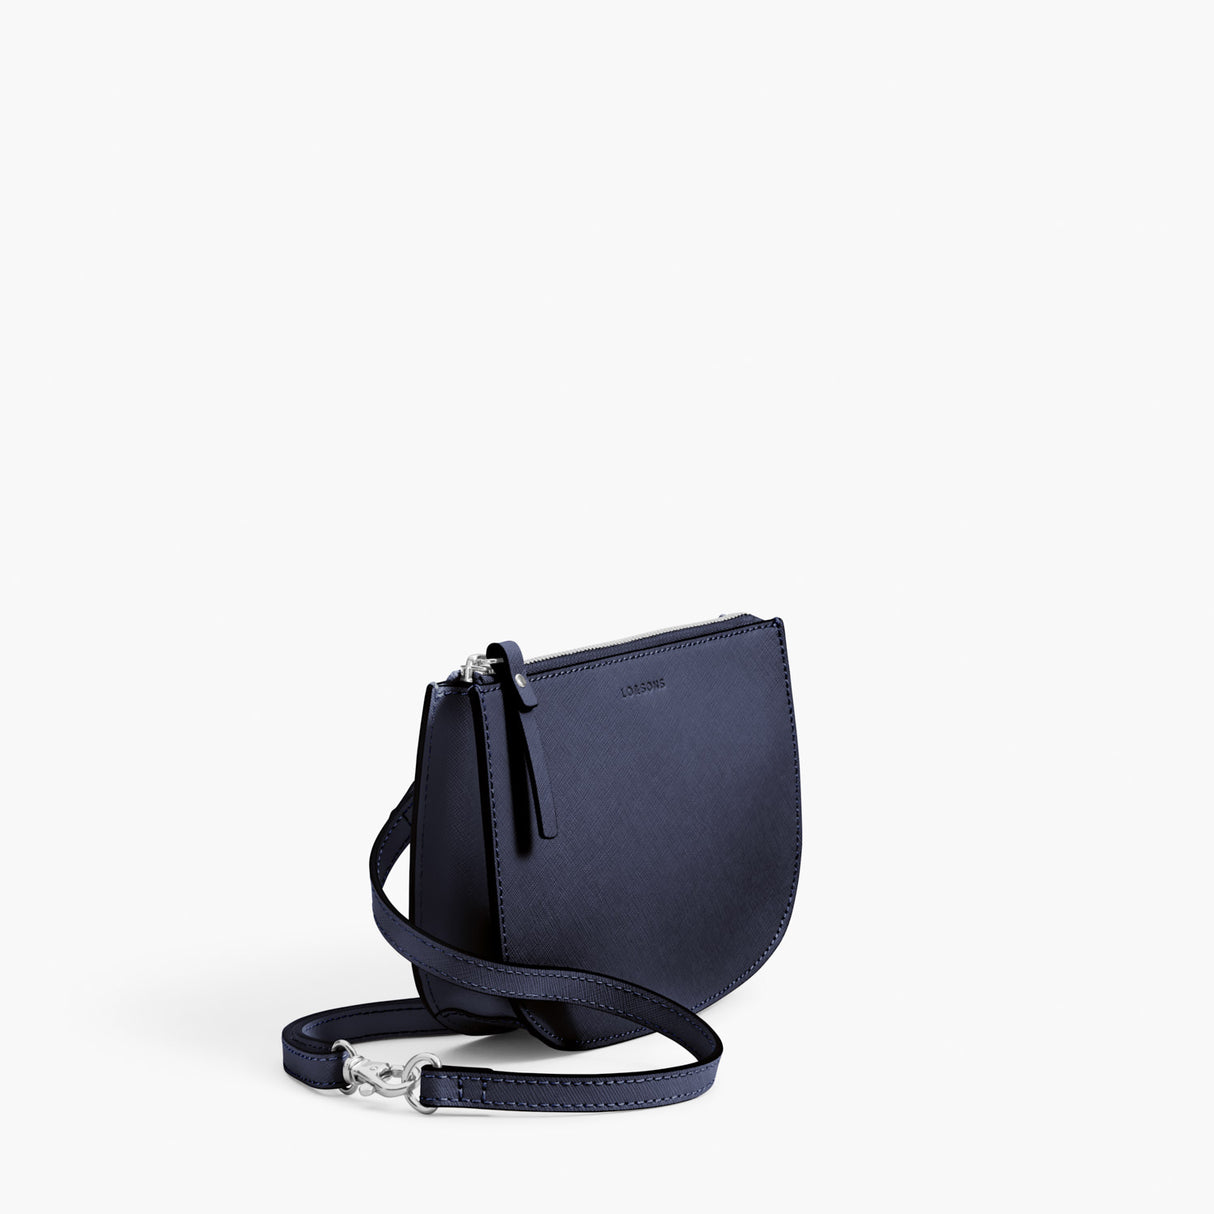 Side - Waverley 2 - Saffiano Leather - Deep Navy / Silver / Azure - Crossbody Bag - Lo & Sons